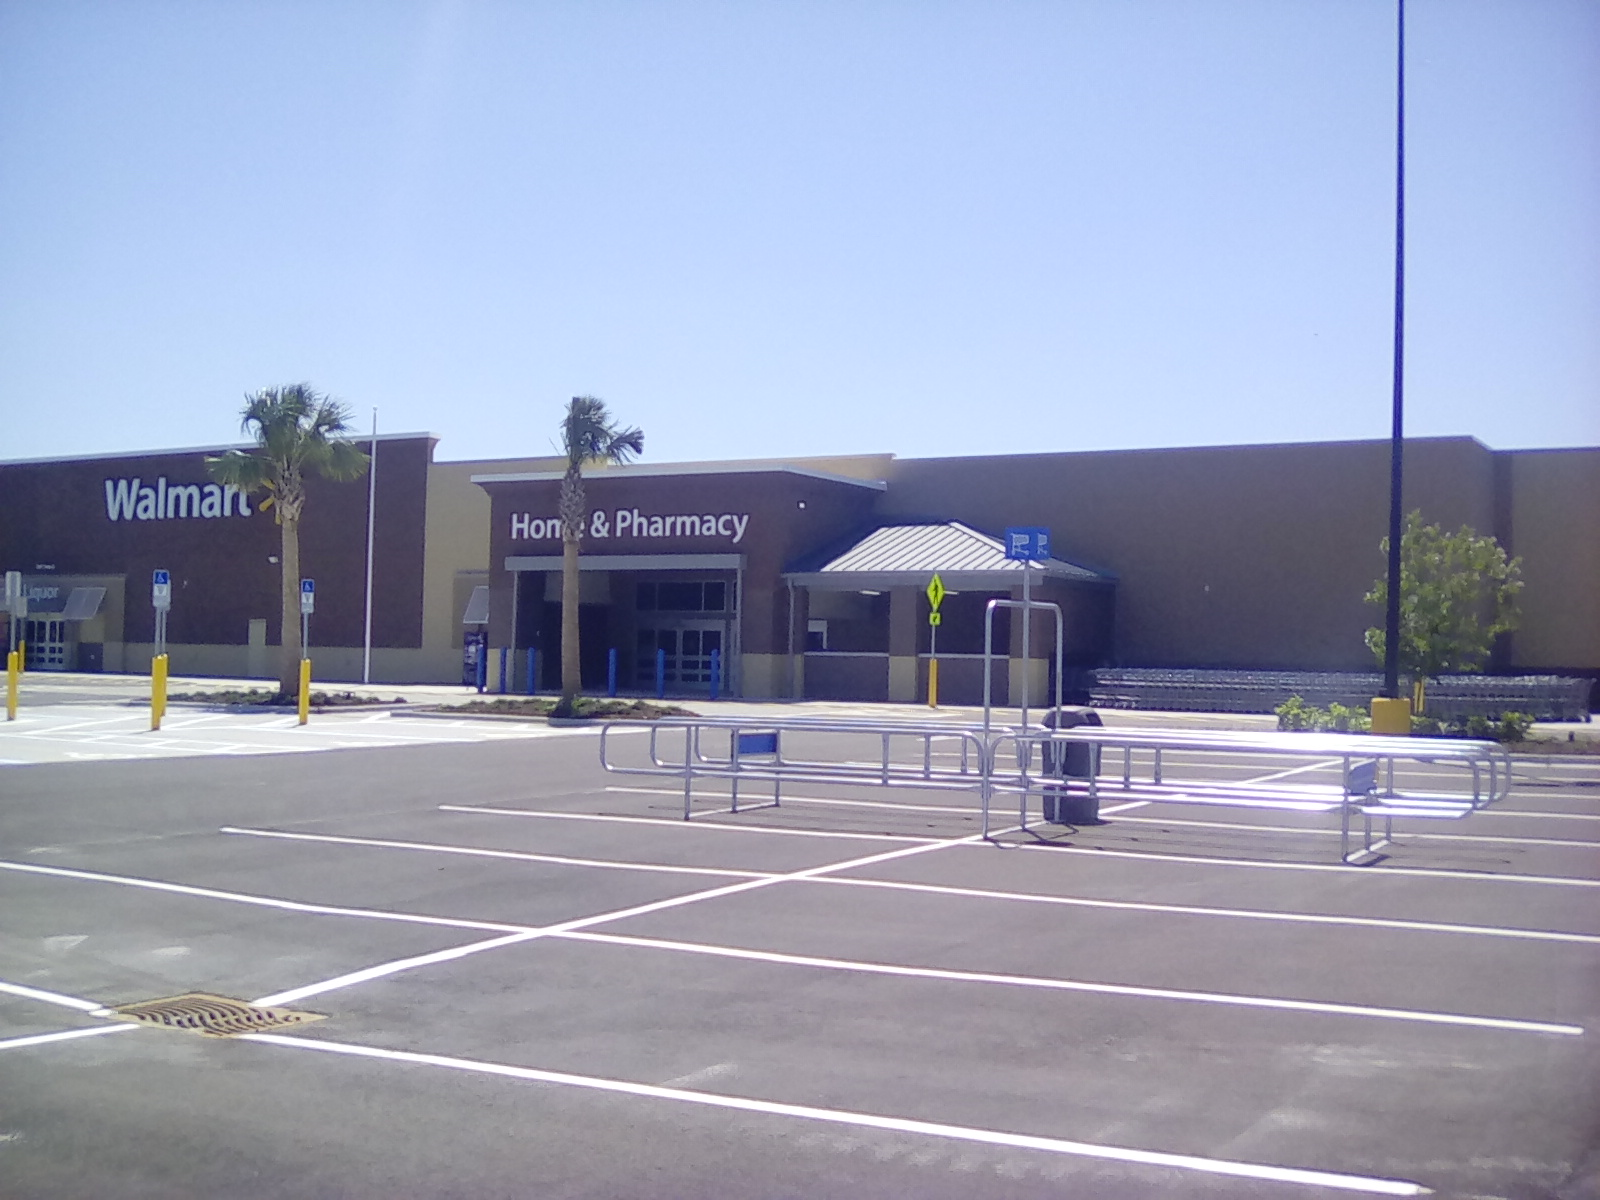 Southwest Florida Online - Sunday Morning News: Walmart LaBelle